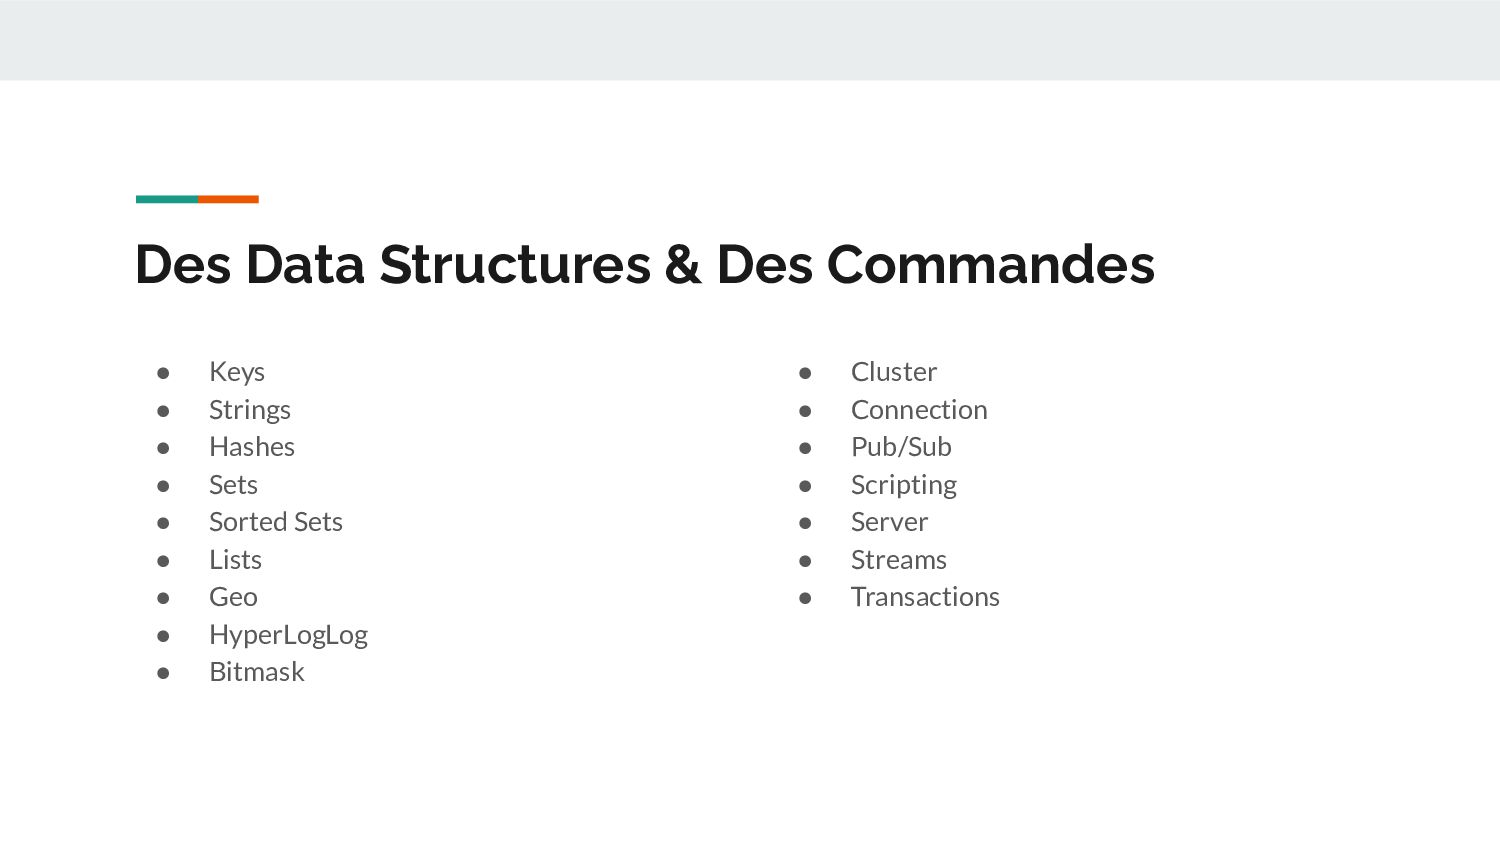 Des Data Structures